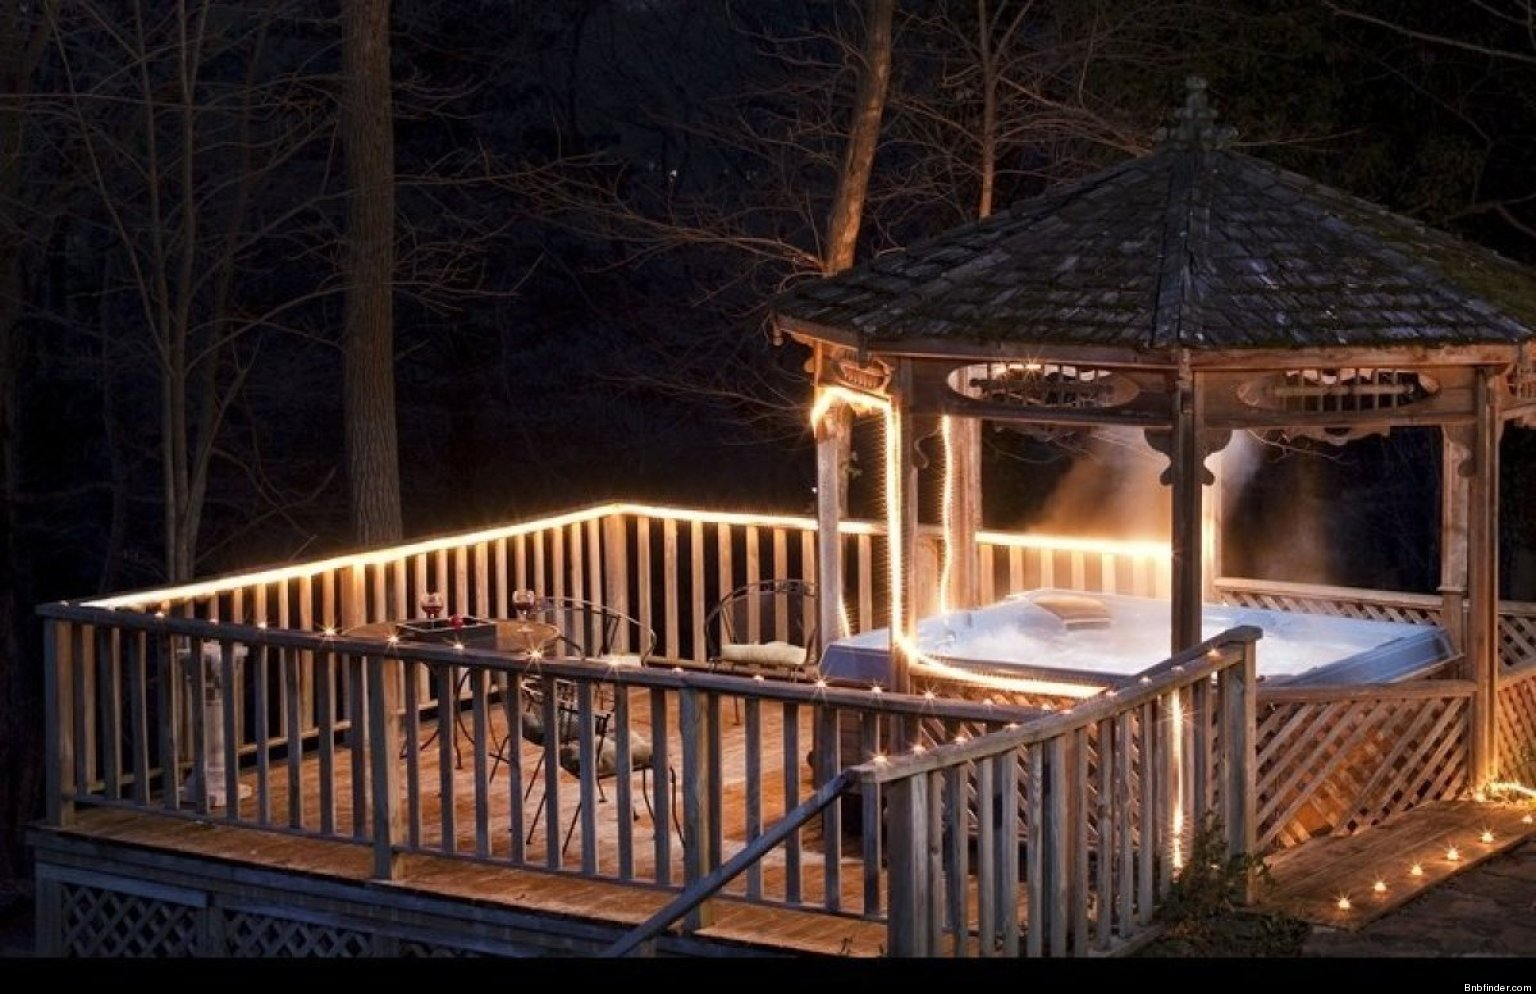 Open Air Hot Tubs For Cold Nights At A BB PHOTOS